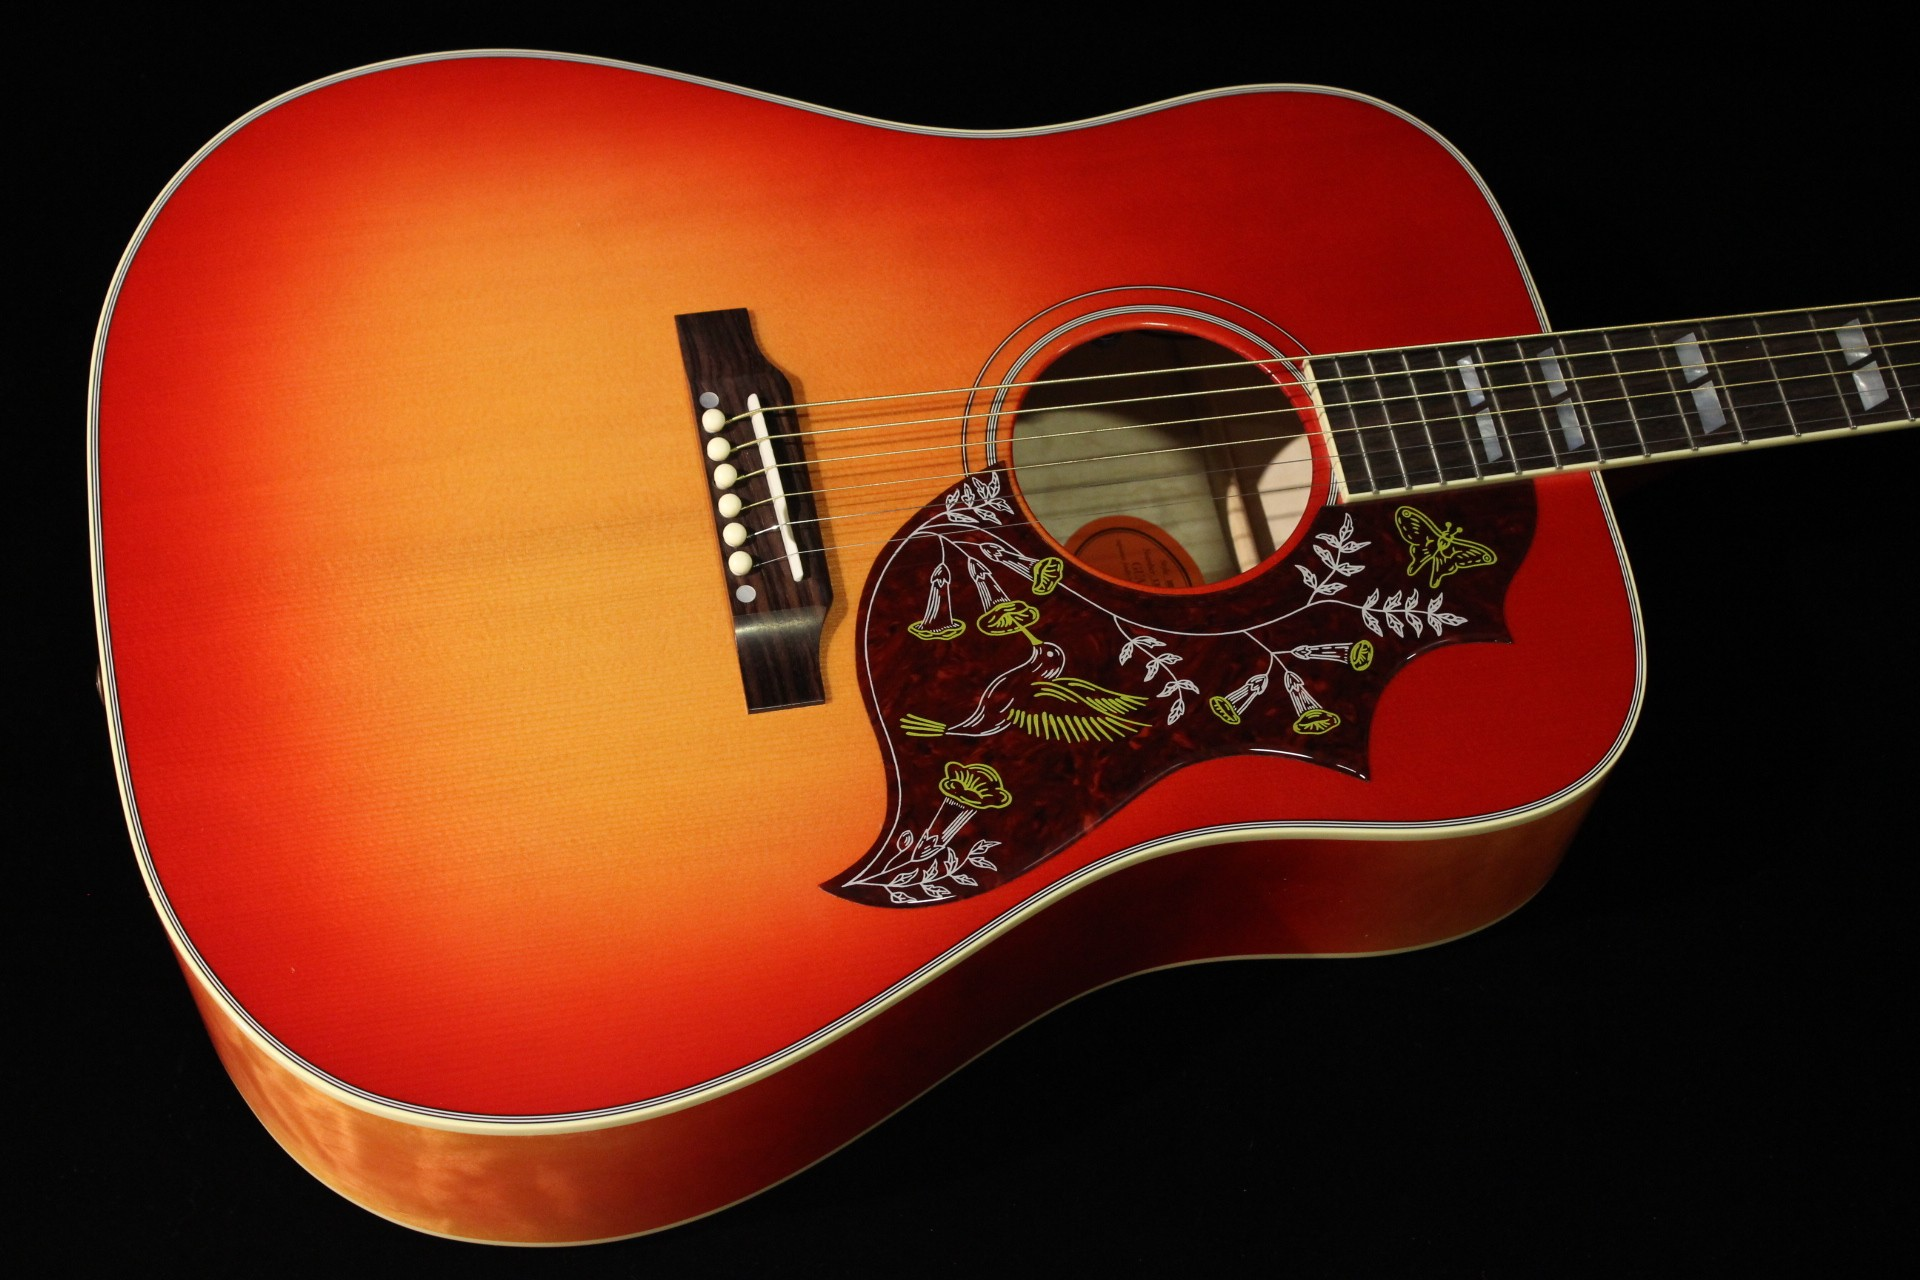 gibson hummingbird quilt vintage cherry sunburst sn 13074043 gino guitars. Black Bedroom Furniture Sets. Home Design Ideas